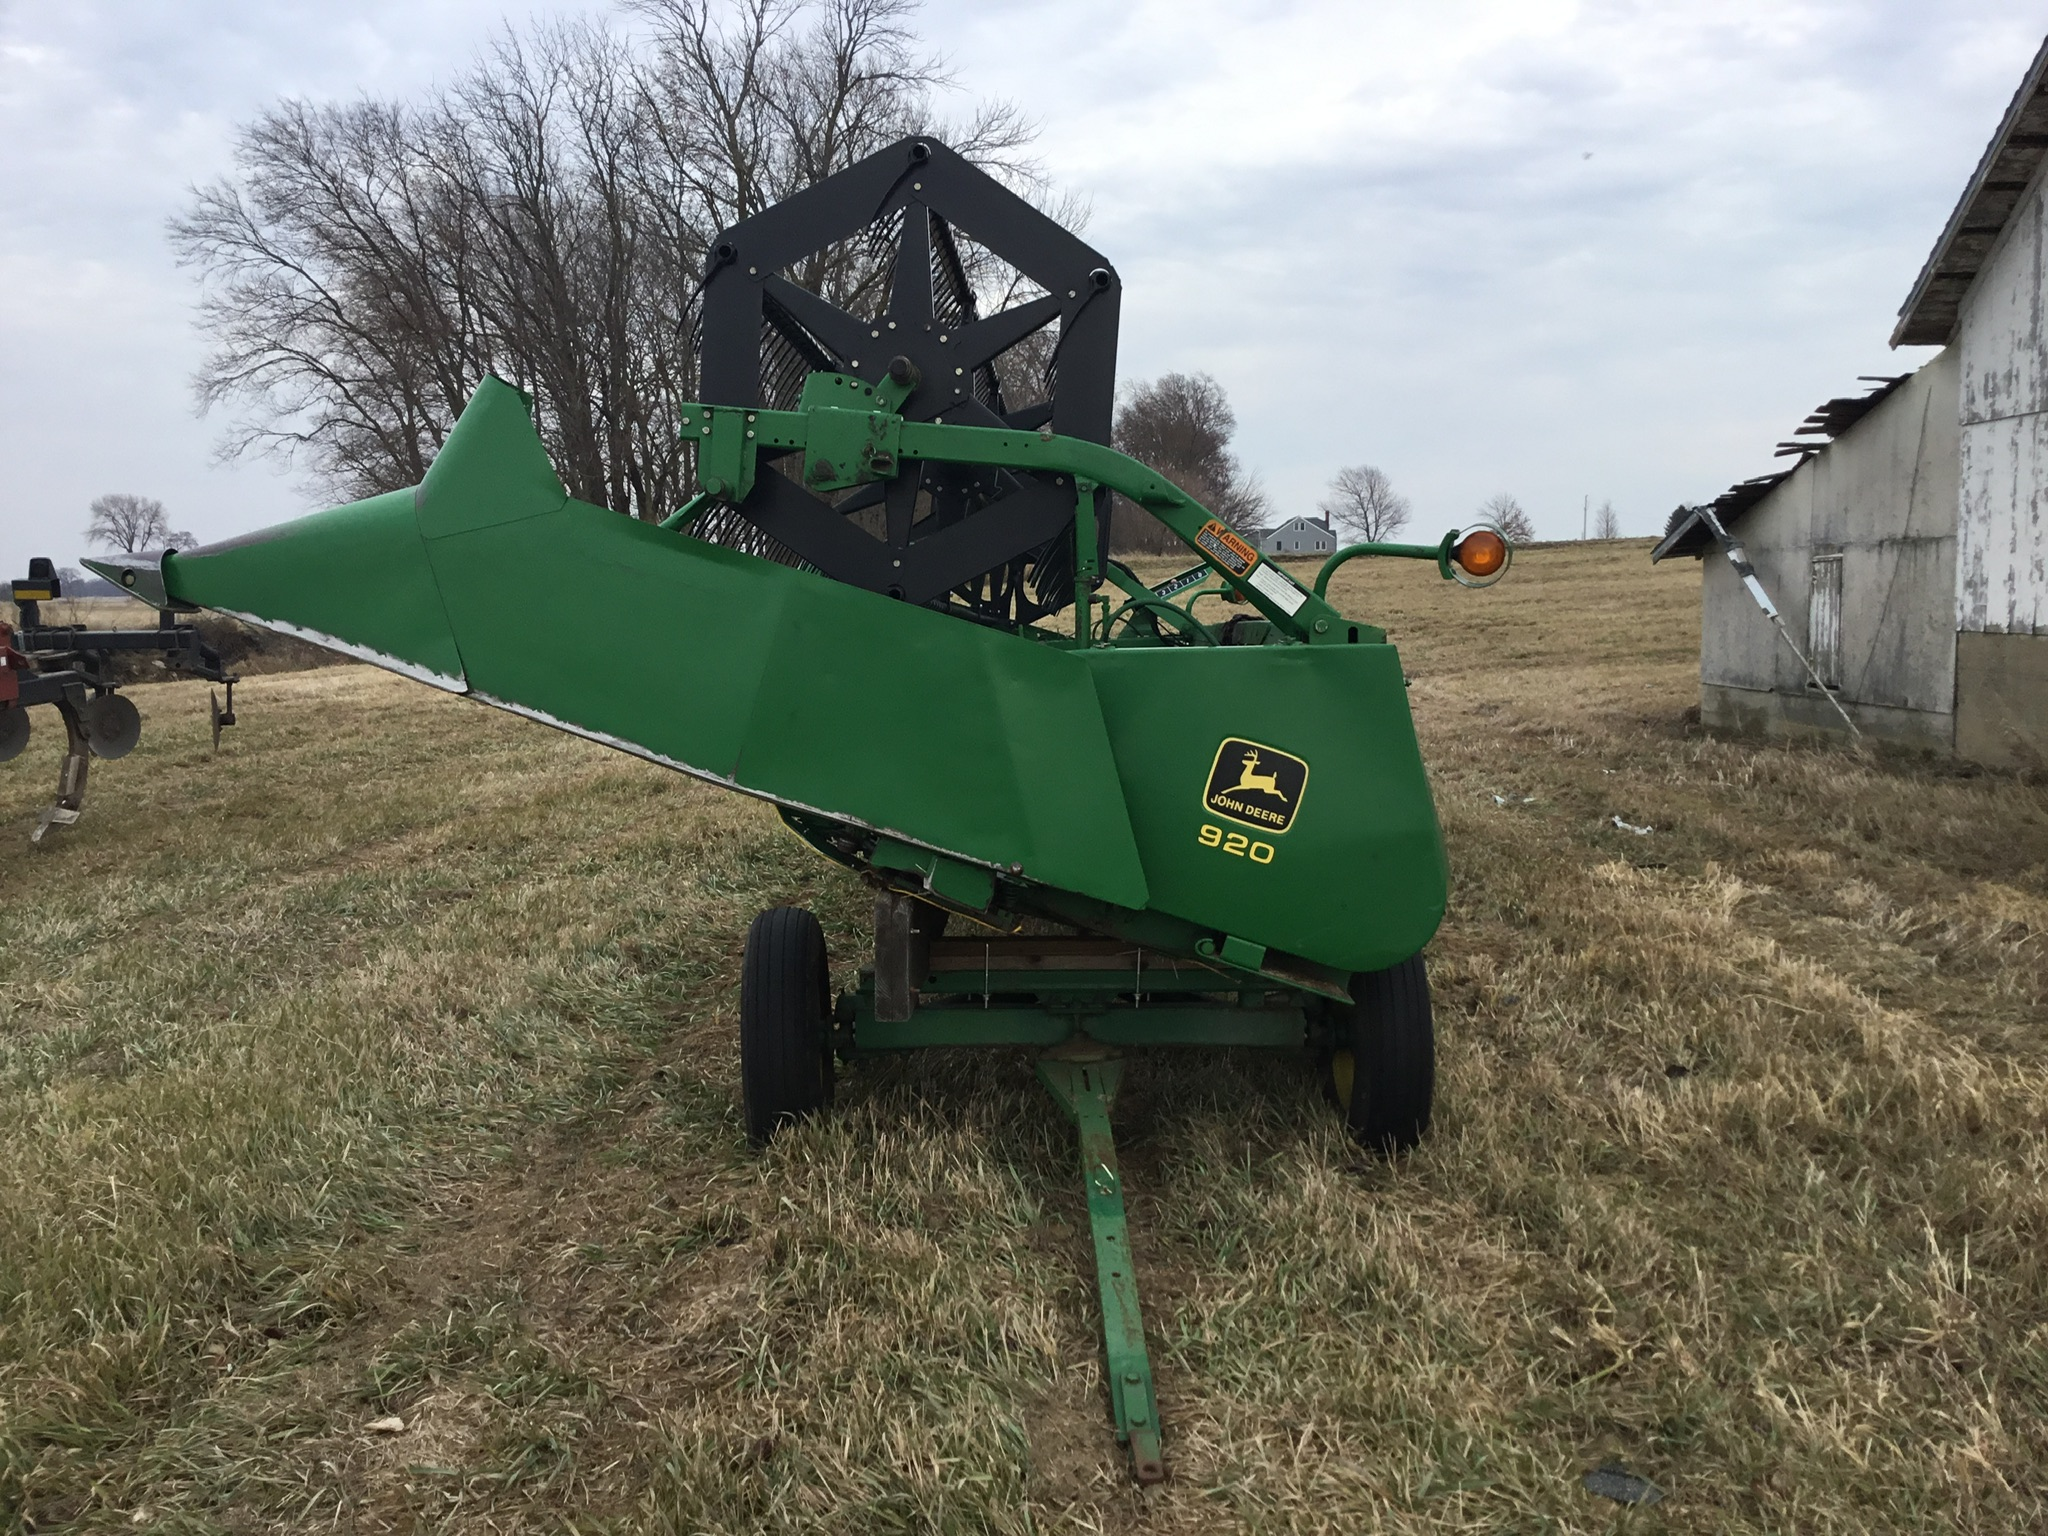 Homemade Head Carrier on JD 963 Gear, 20 Ft. - Image 3 of 3